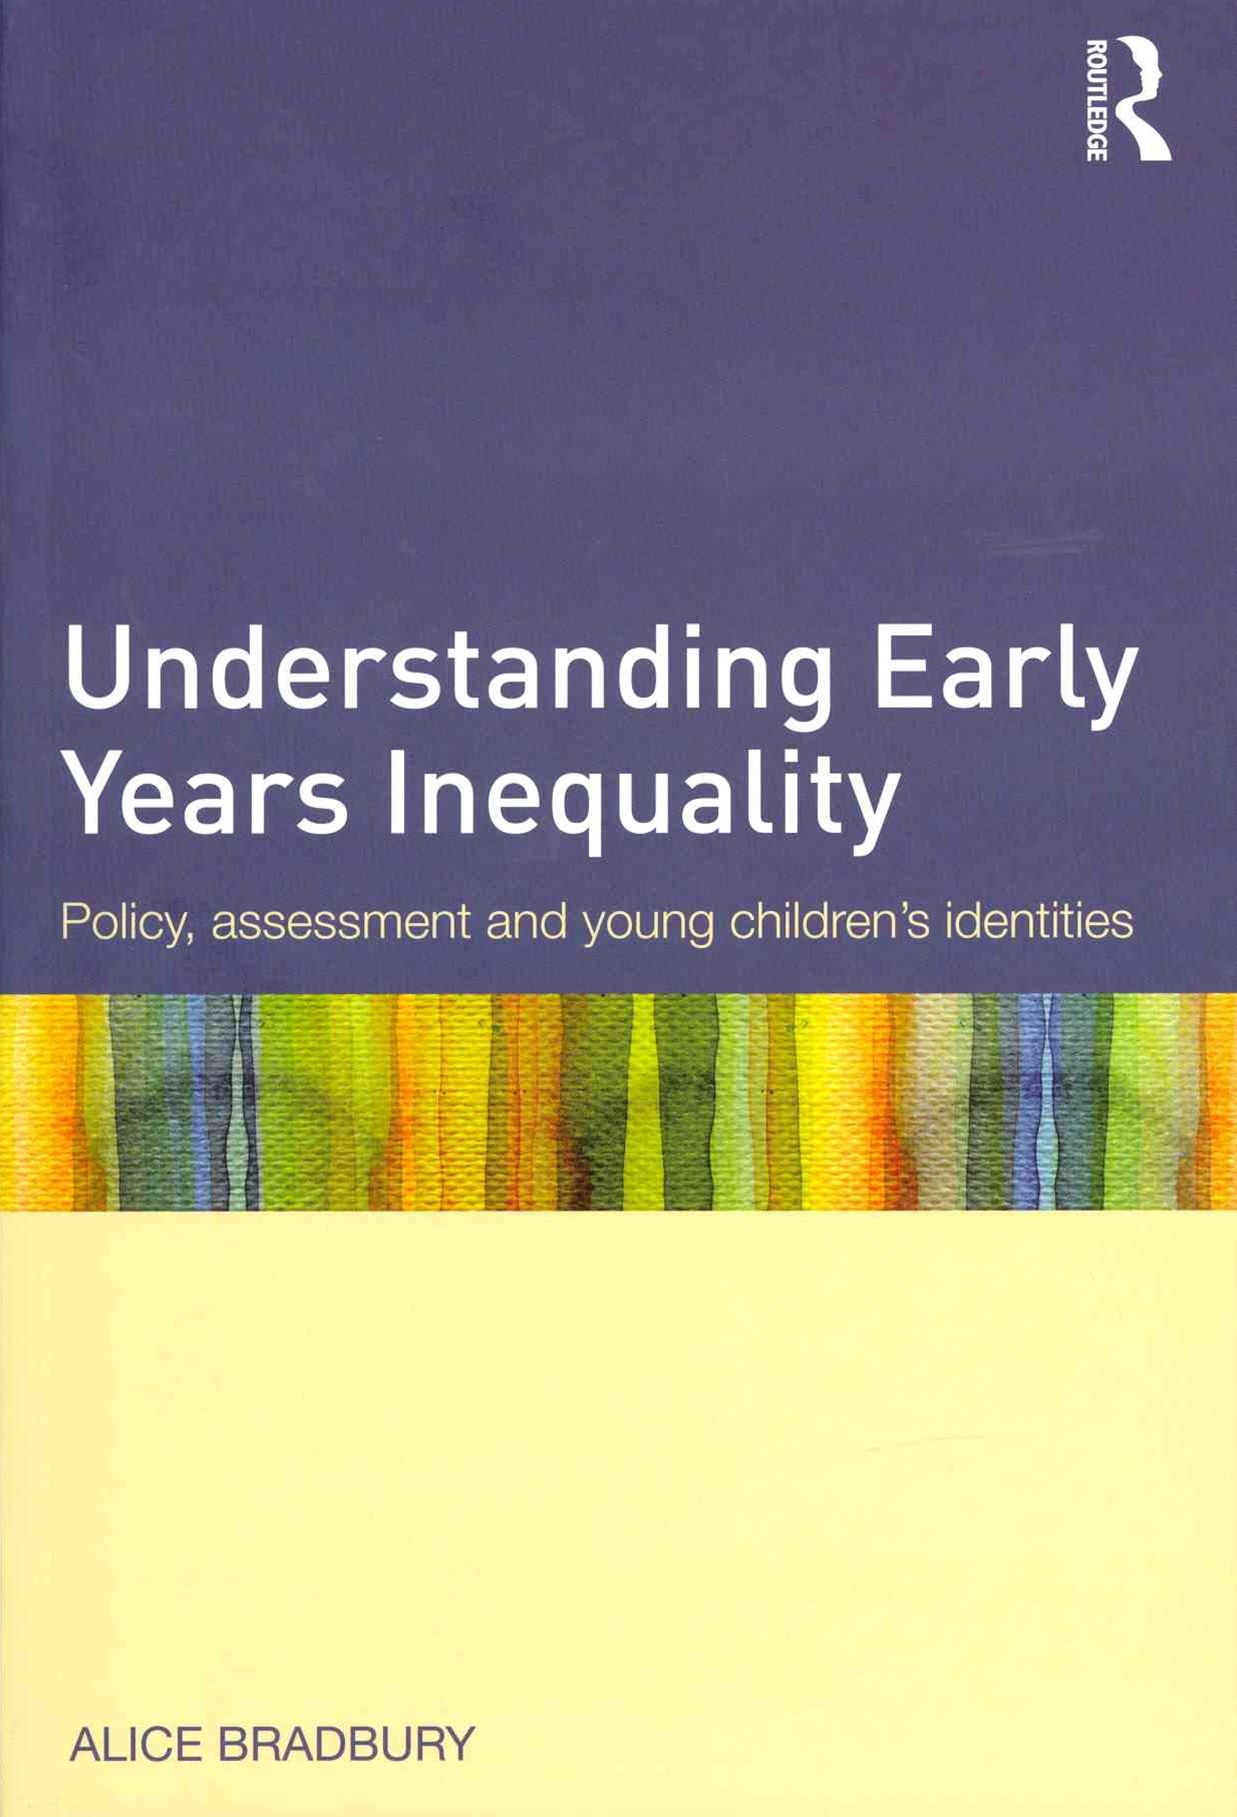 Understanding Early Years Inequality